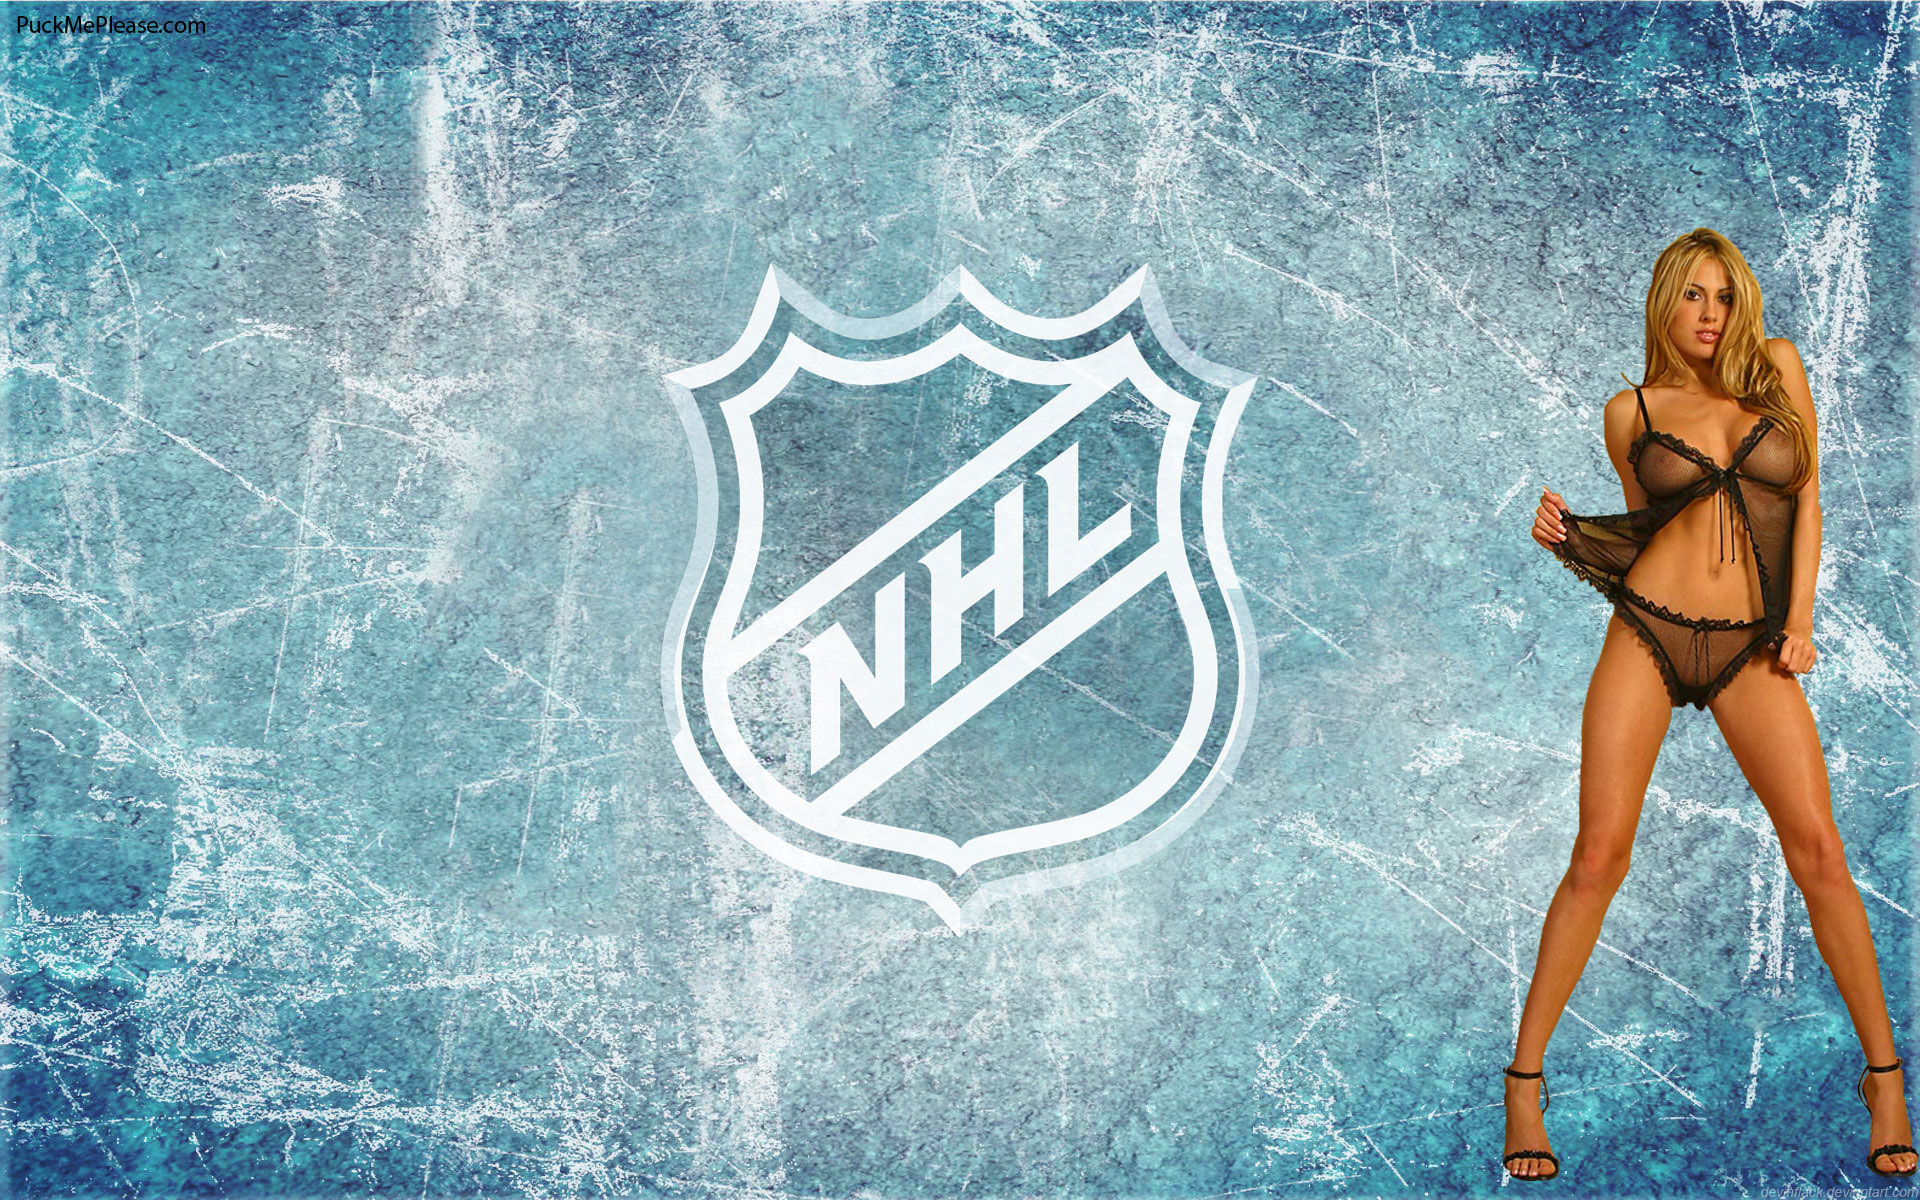 NHL Wallpaper with puck bunny